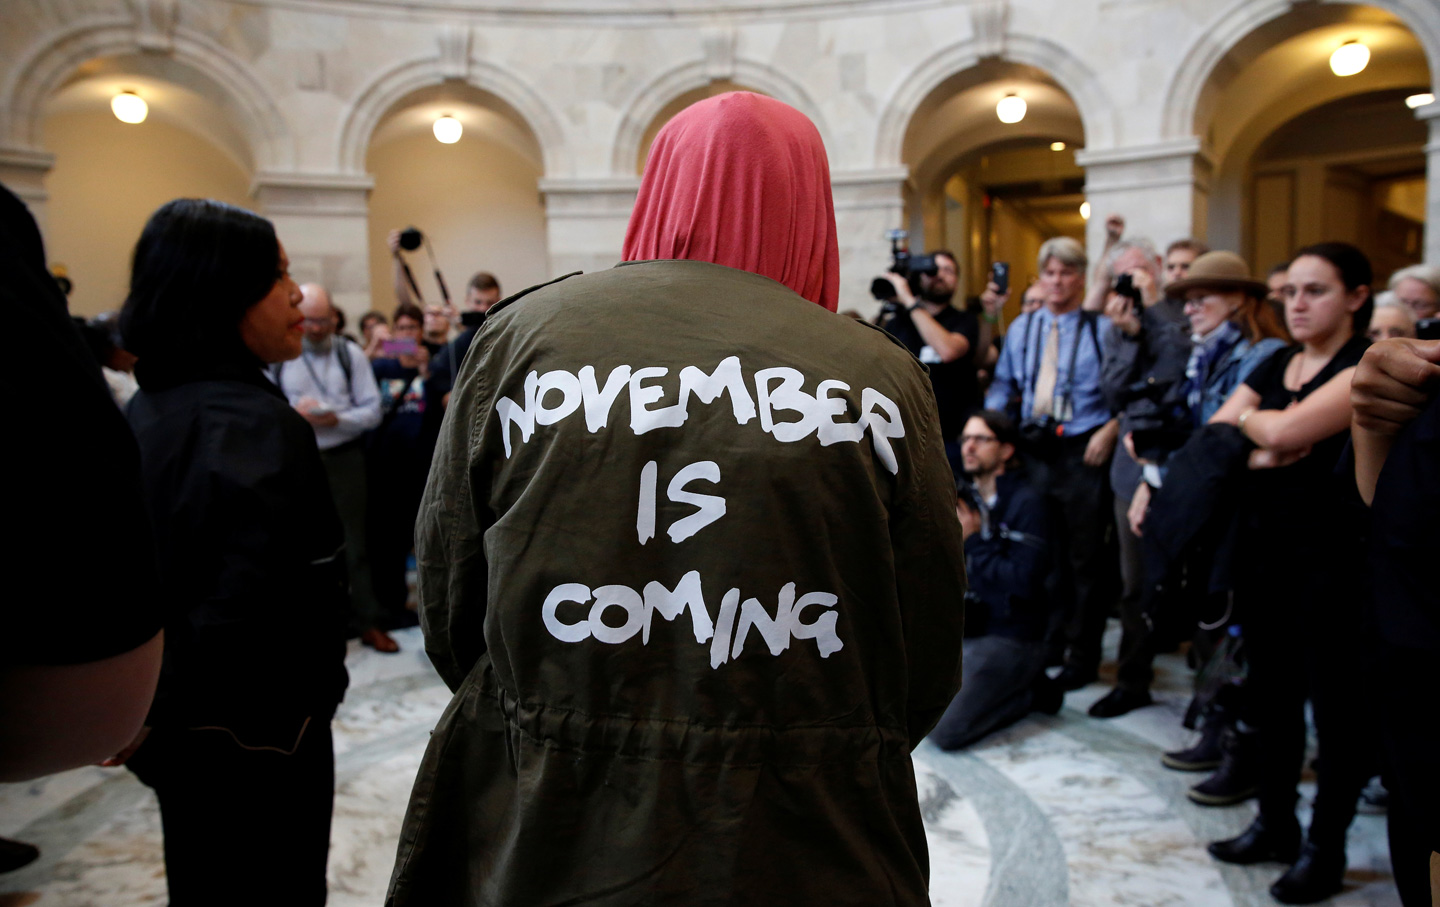 Kavanaugh-protest-November-Is-Coming-rtr-img